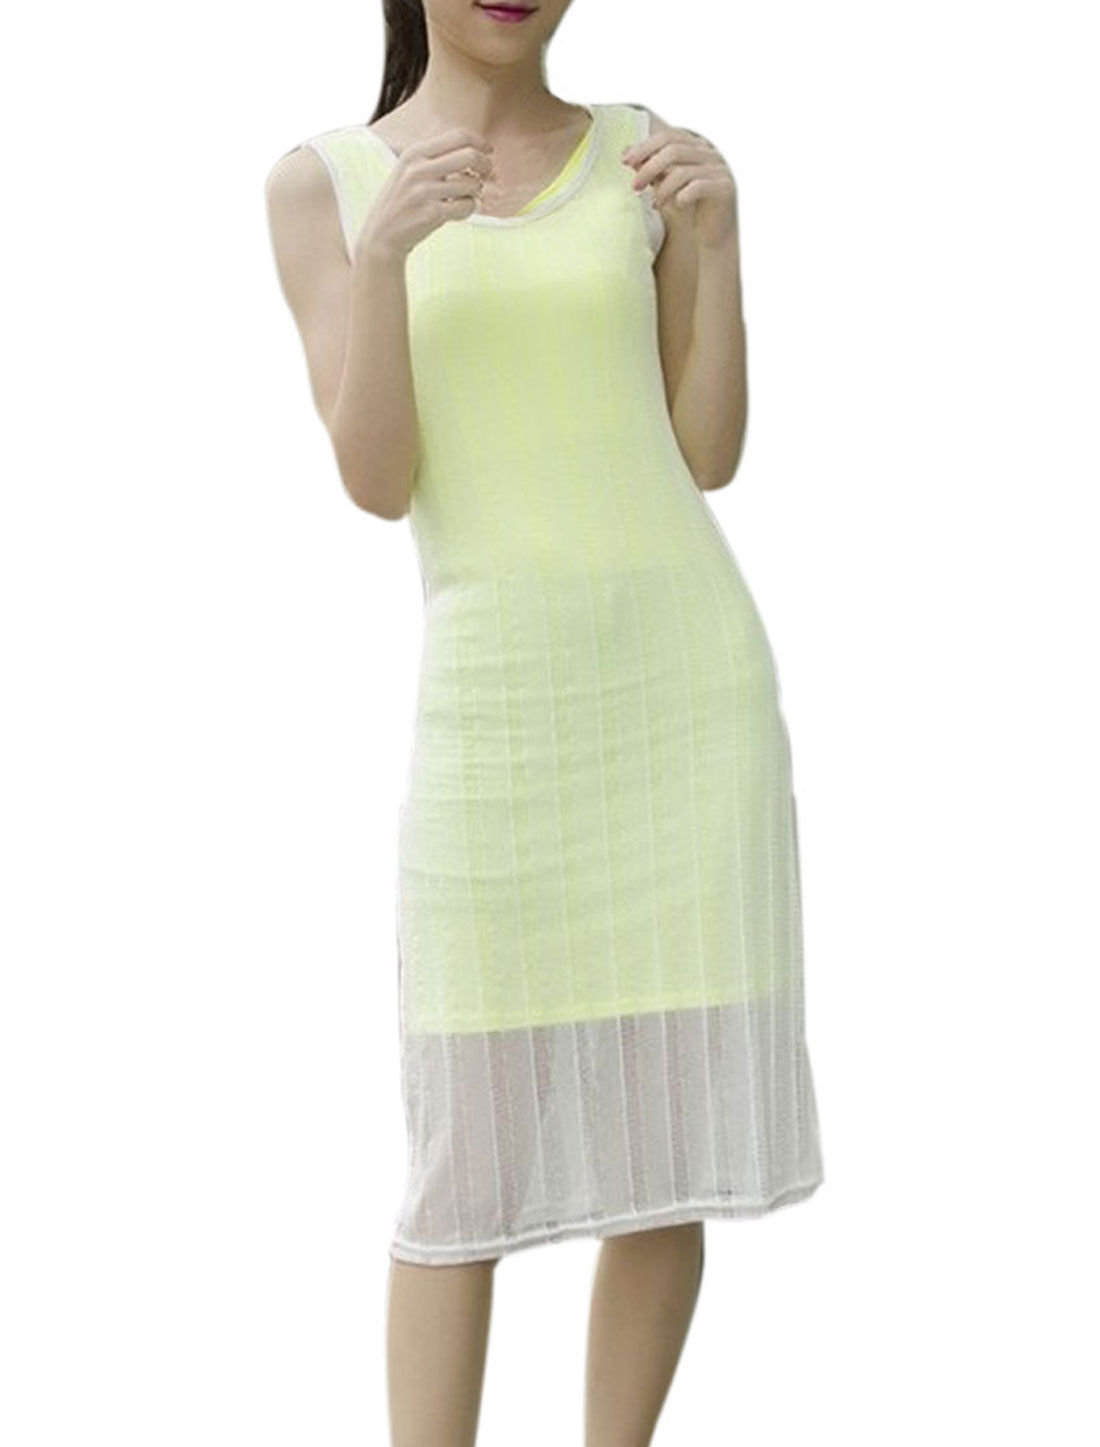 Lady Round Neck Slim Fit Lime Mini Dress w Chic Sheer White Mesh Tank Dress XS